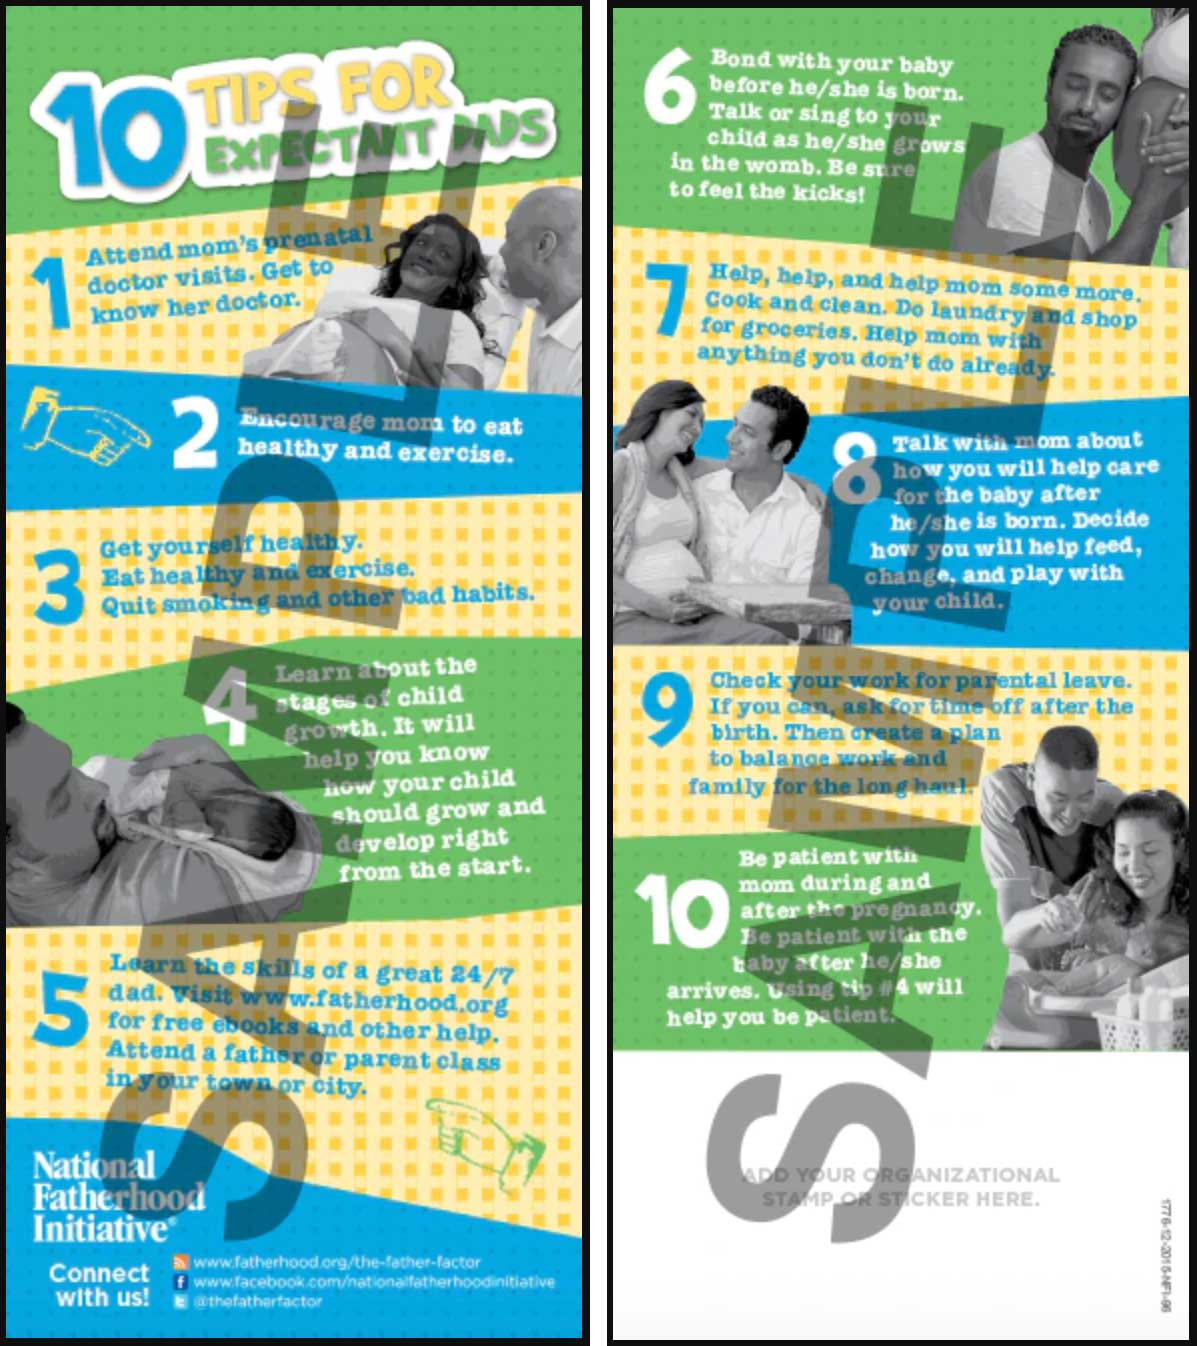 10-tips-for-expectant-dads-sample.jpg